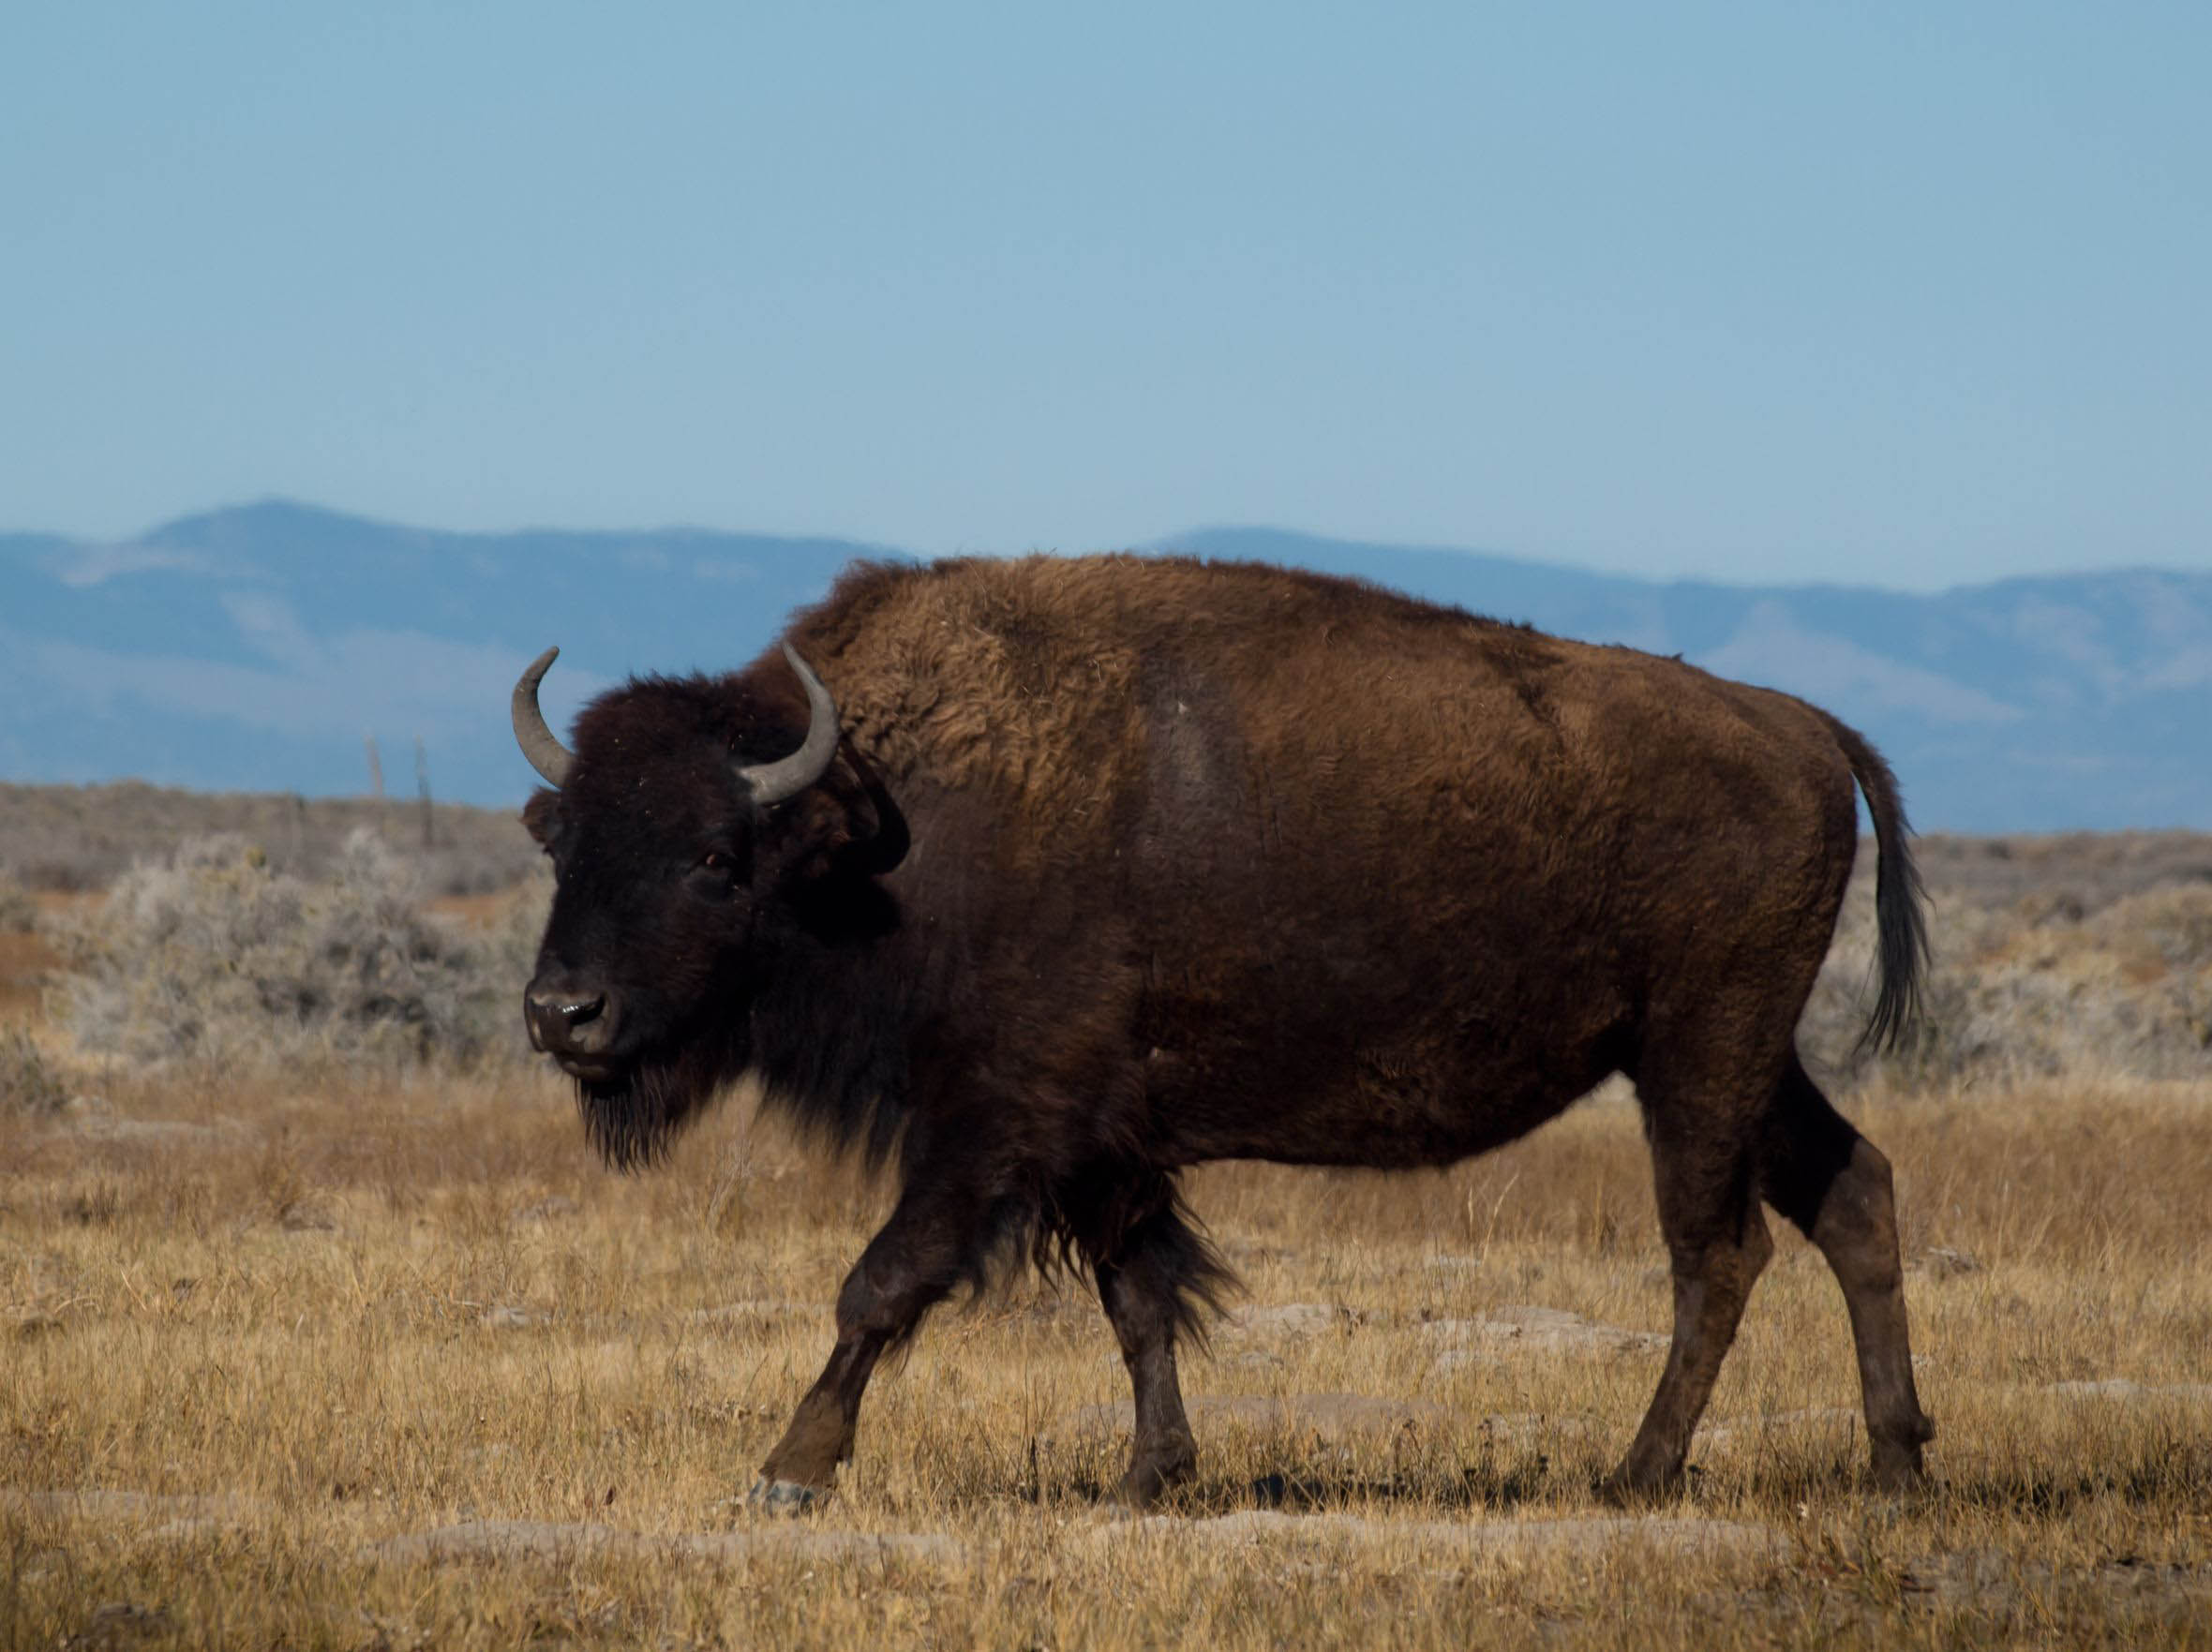 bison-plains-america